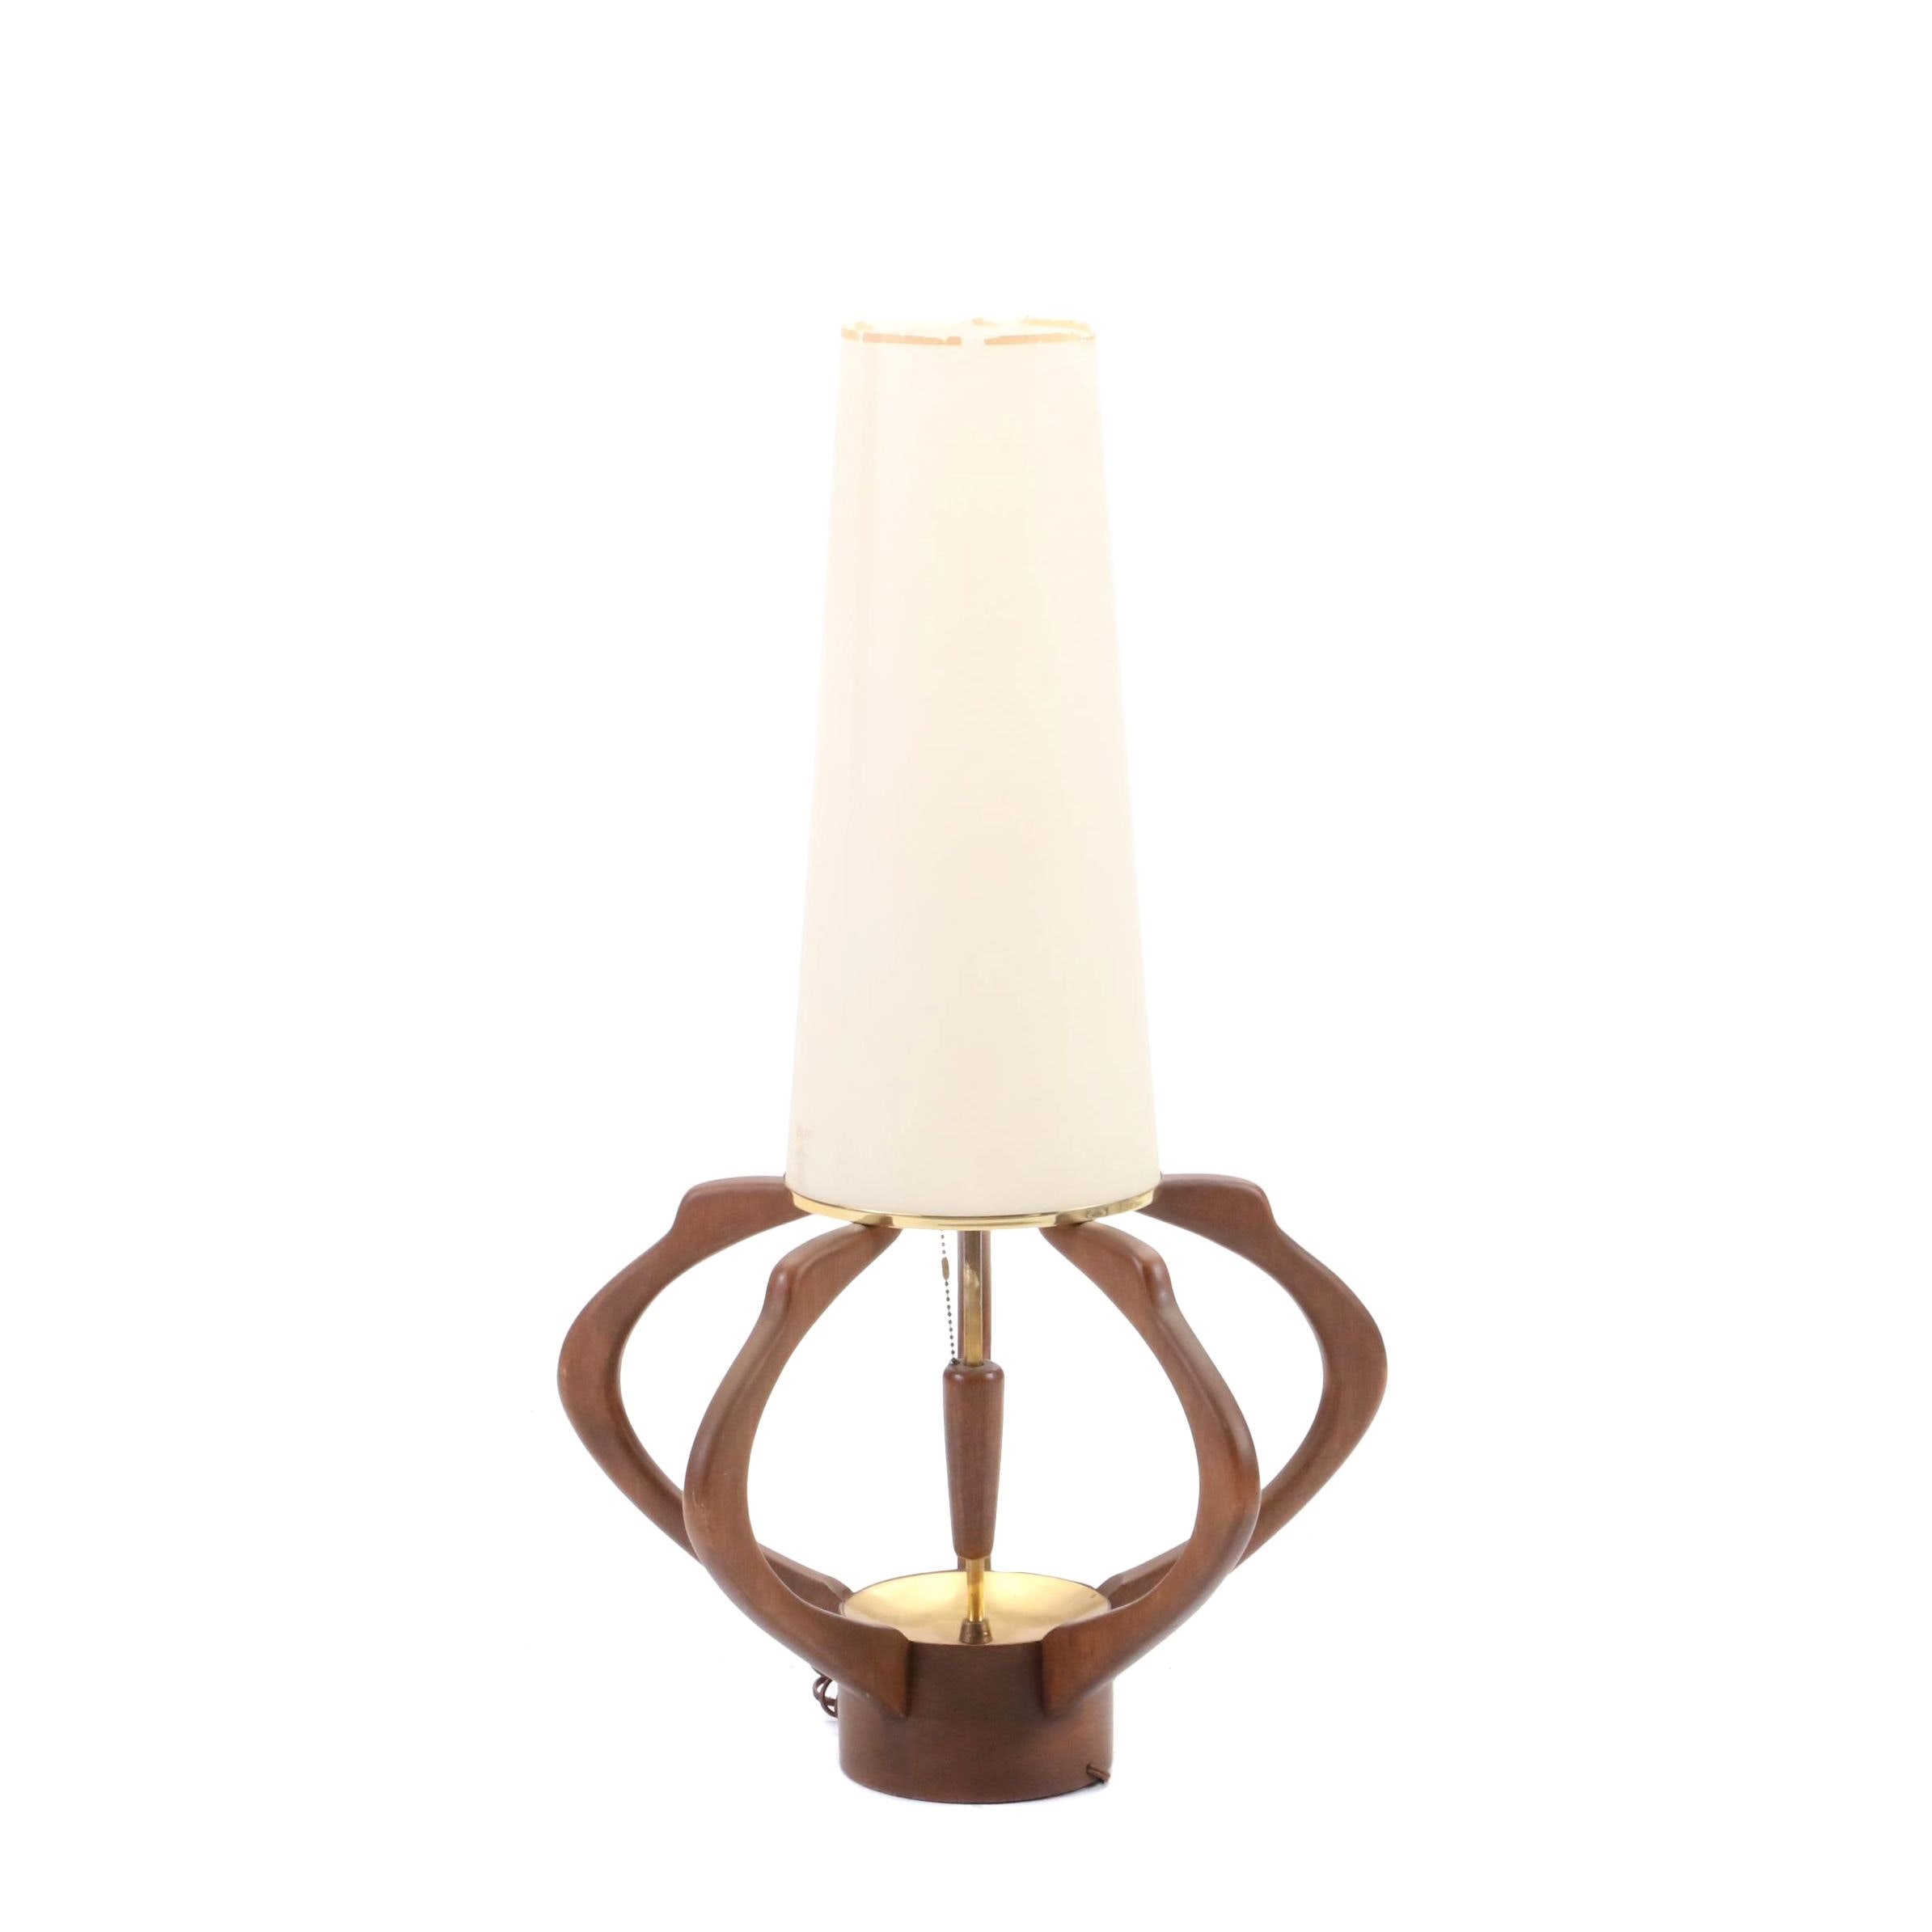 Mid Century Modern Lamp by Modeline